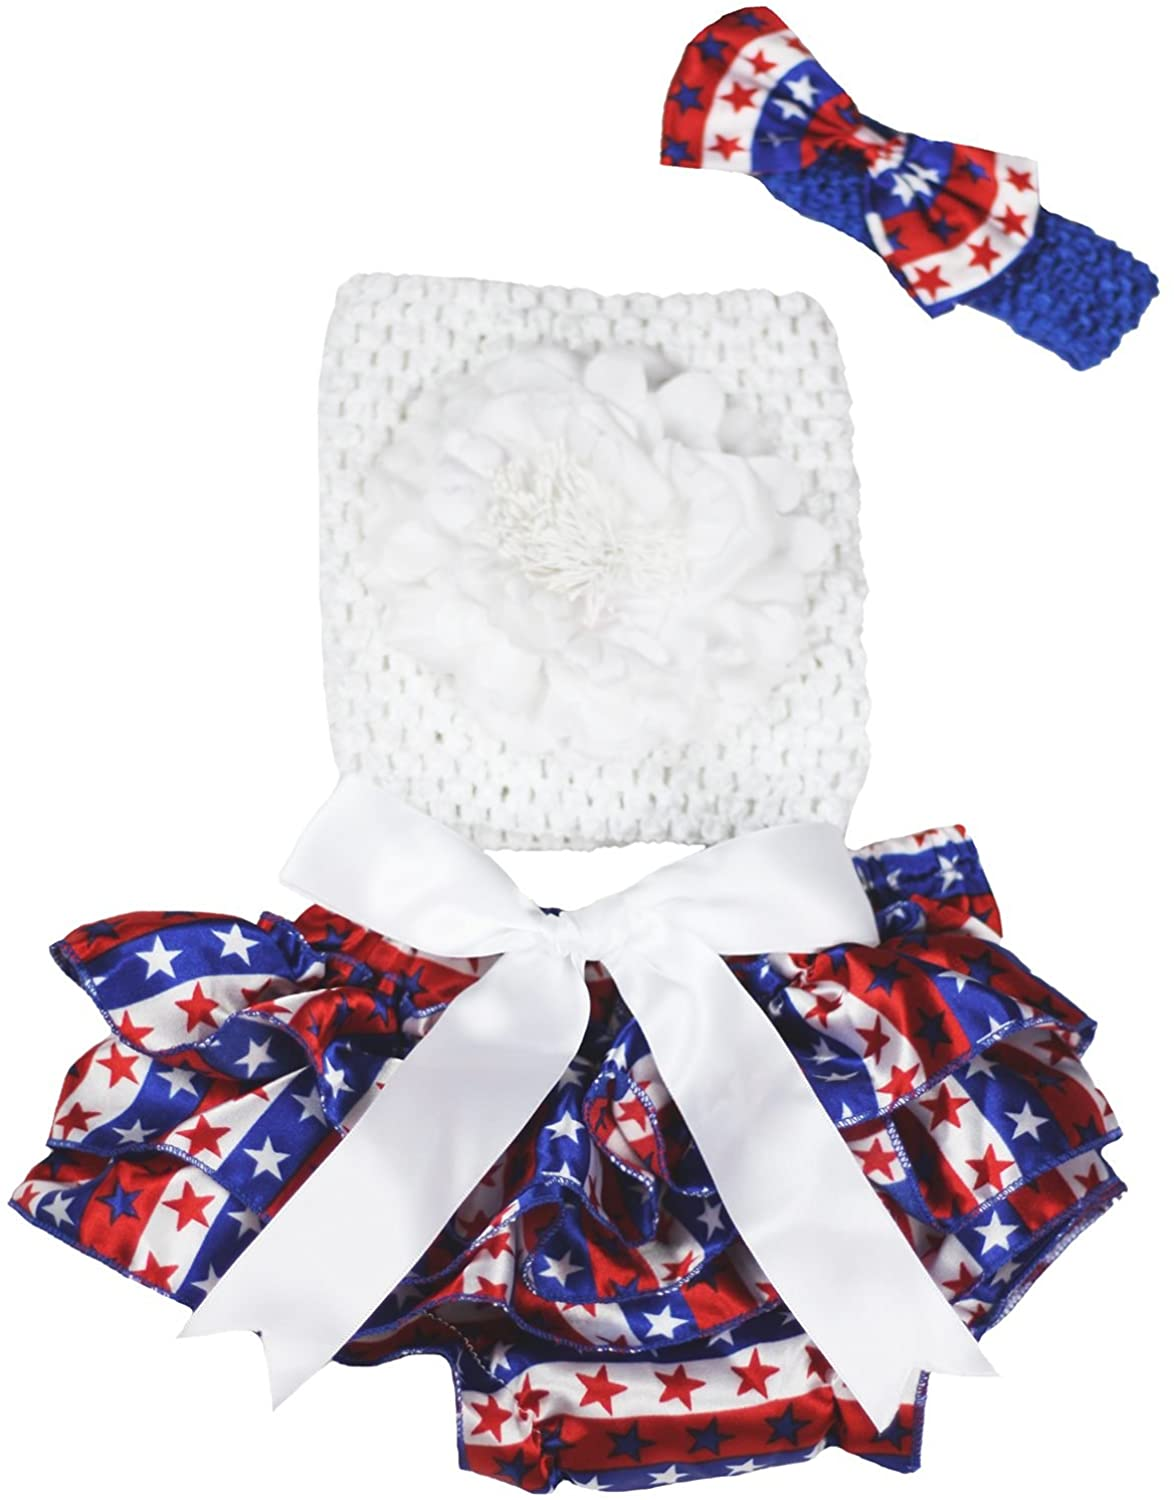 Petitebella White Flower Tube Top Striped Stars Baby Bloomer Outfit 3-12m